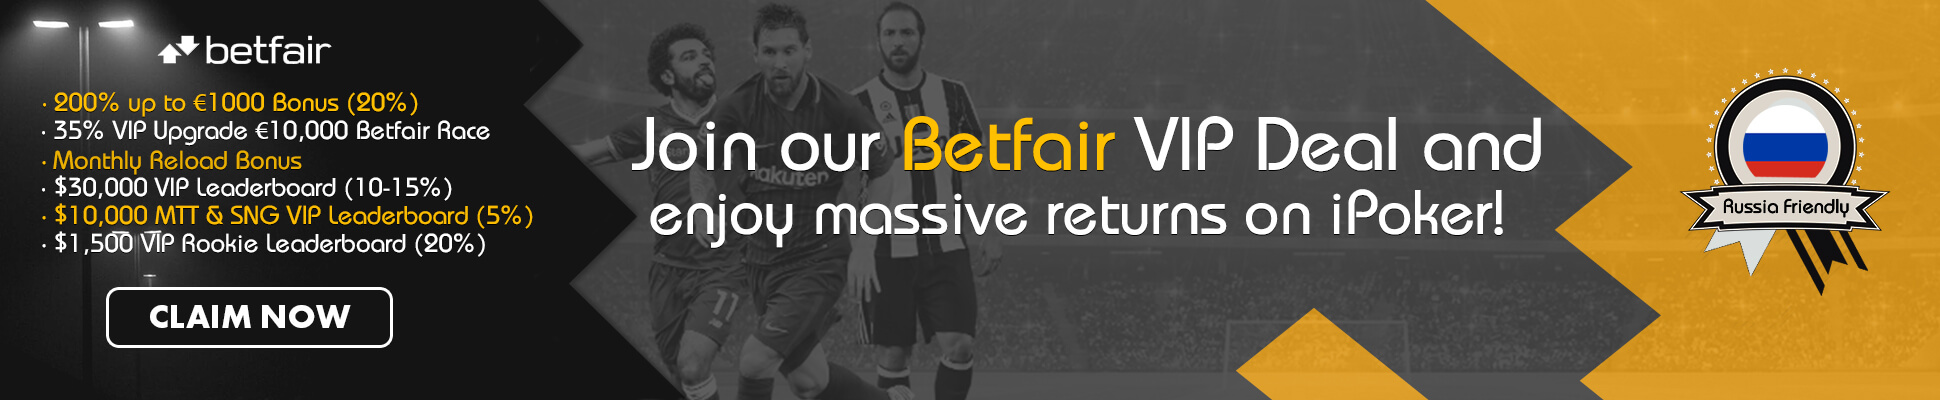 betfair-slider-banner-adjusted